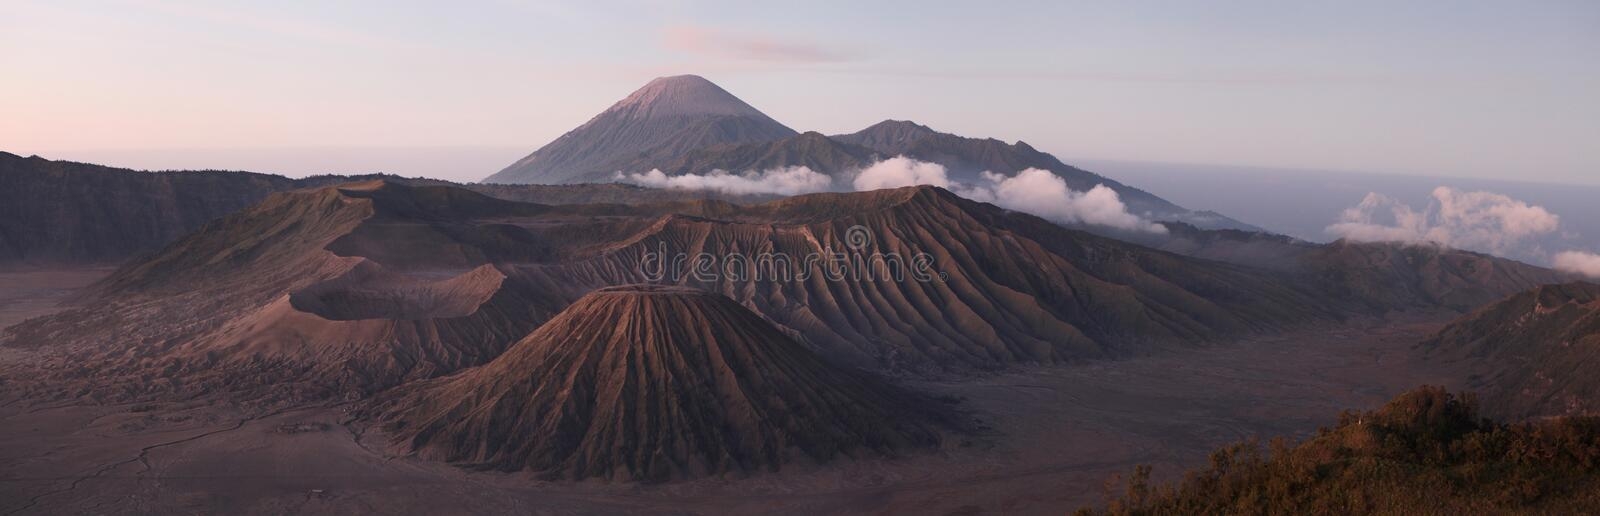 Sunrise over Mount Bromo and the Tengger Caldera in East Java, I. Sunrise over Mount Bromo (2,329 m) and the Tengger Caldera in East Java, Indonesia. Panorama royalty free stock photo